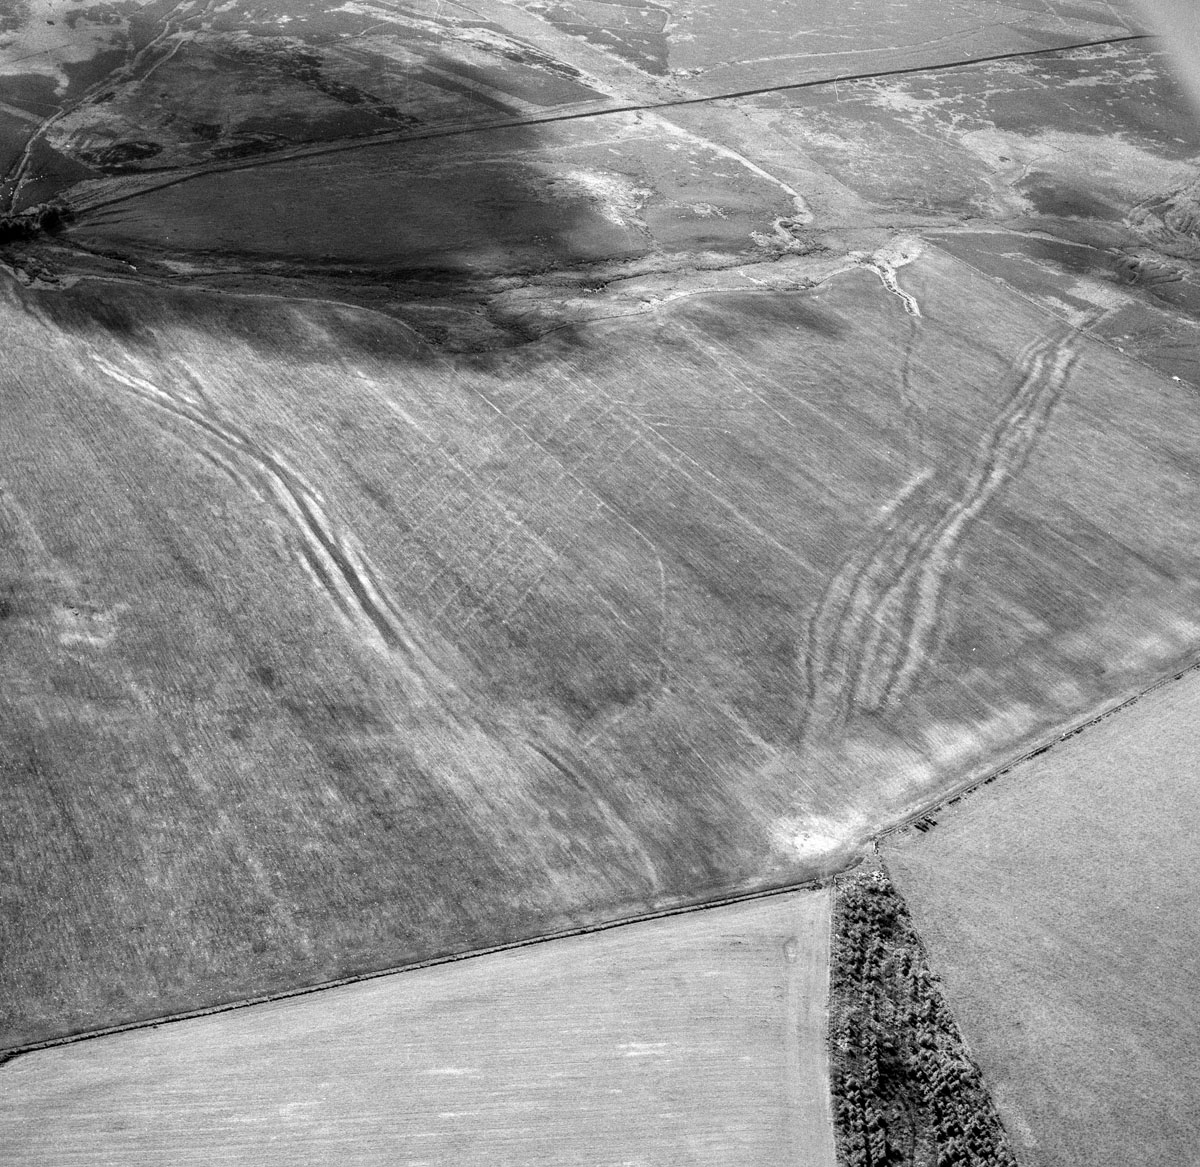 Medieval/Post-medieval Braided Trackway - Cropmark page